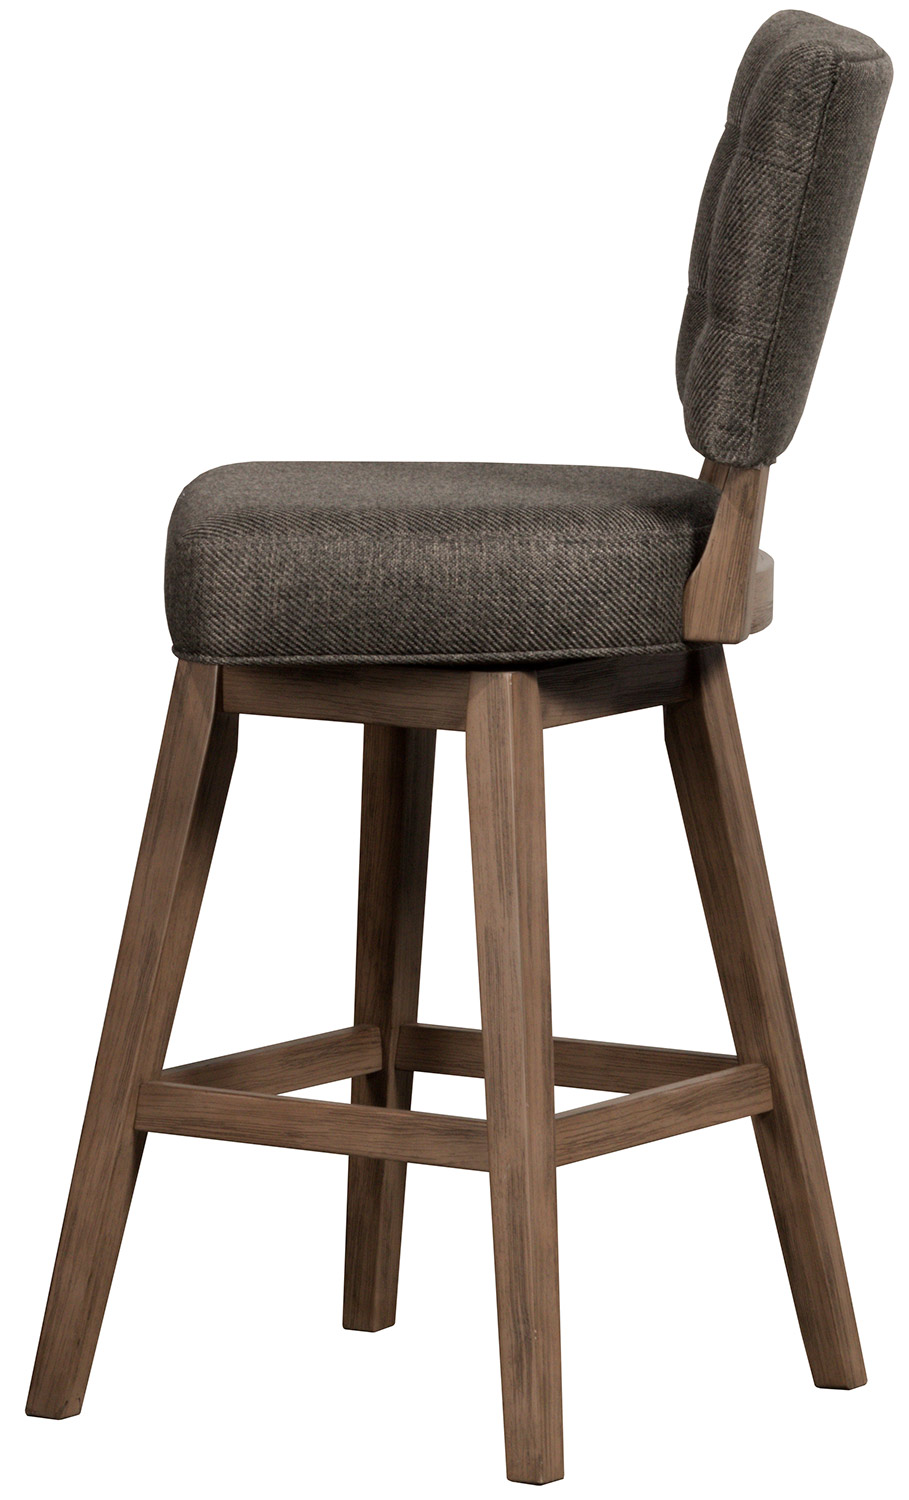 Hillsdale Lanning Swivel Bar Stool - Weathered Brown